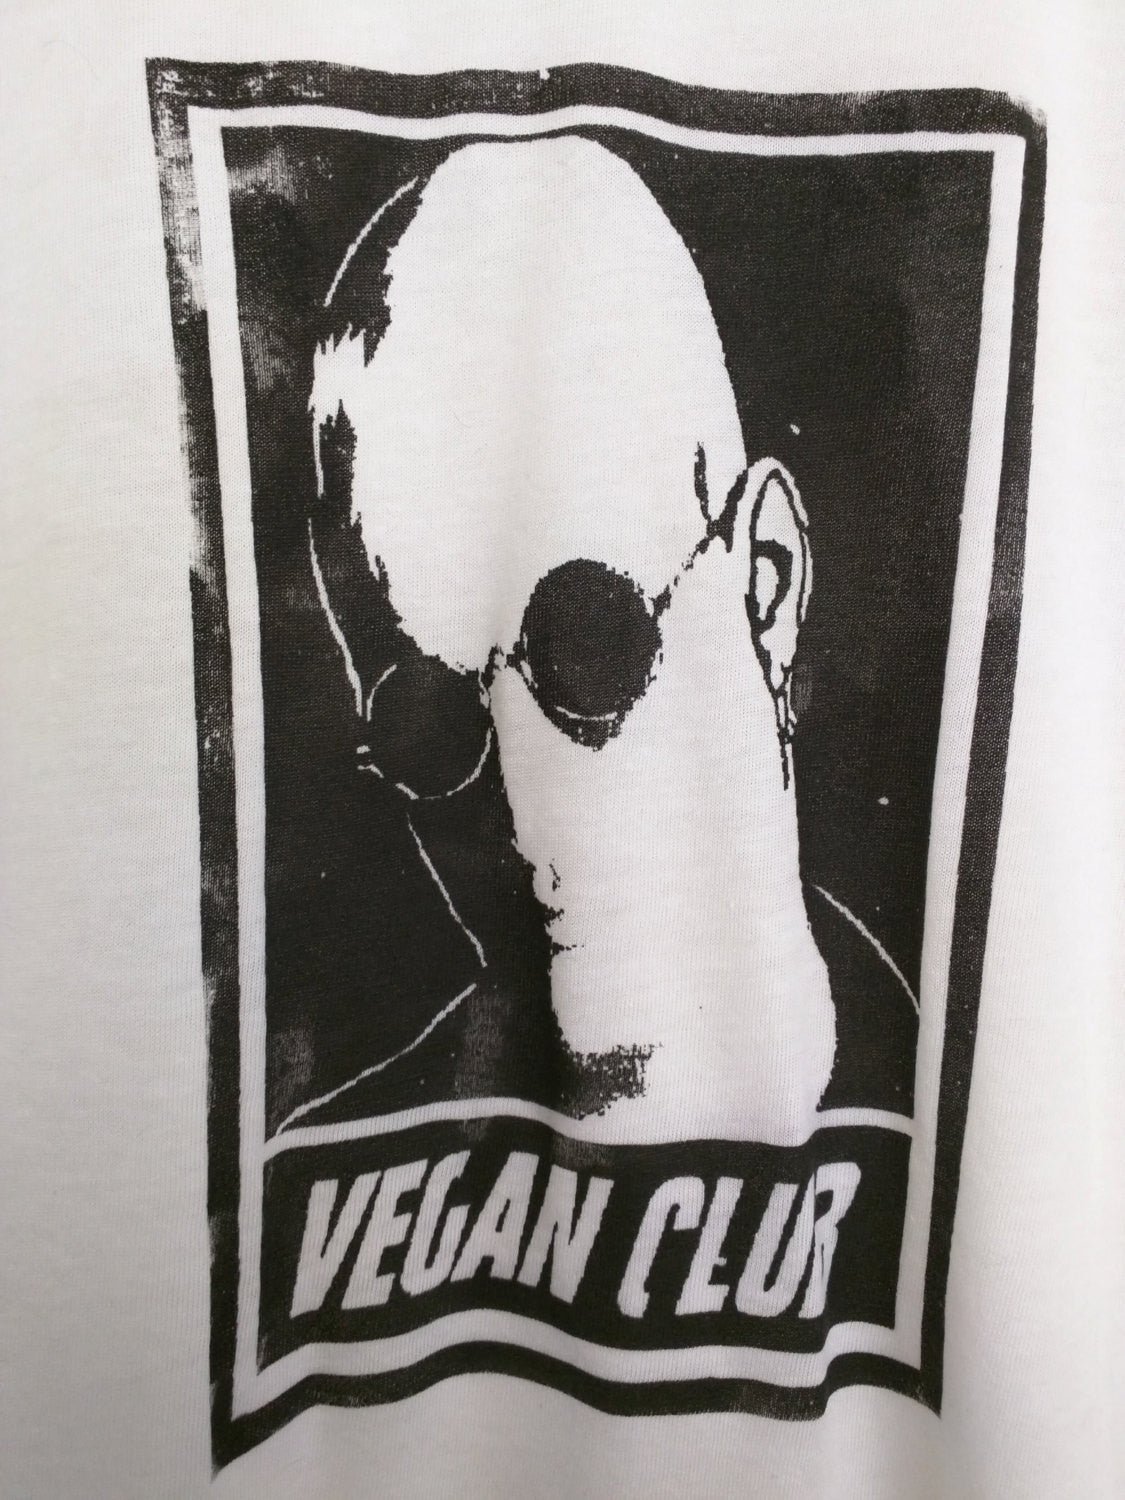 "Unisex T-shirt ""Vegan Club"" featuring Woody Harrelson handmade by L3F0u"